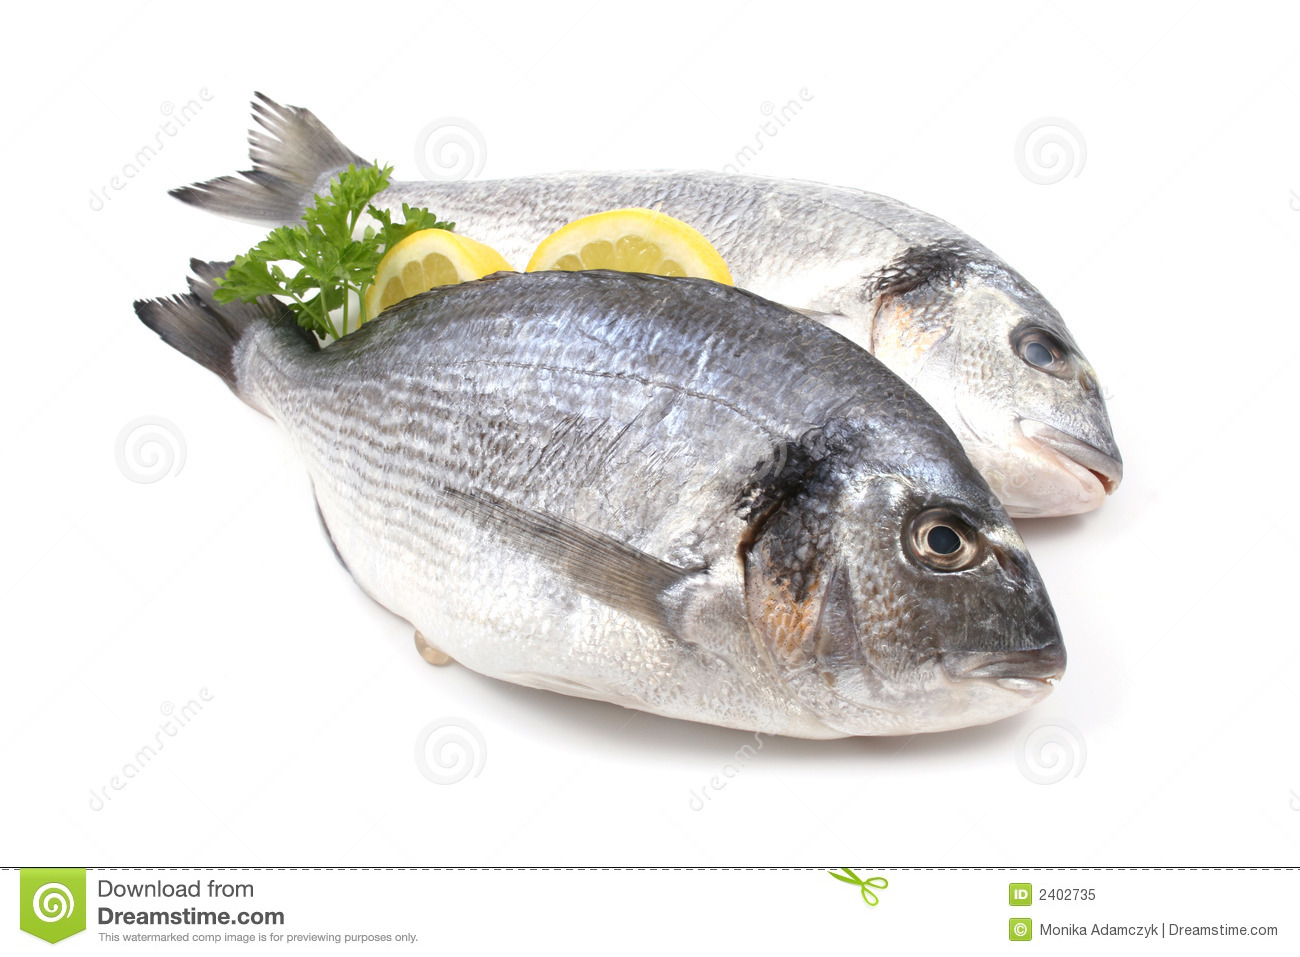 Dorada fish stock image image of parsley fish fishes for Image of fish